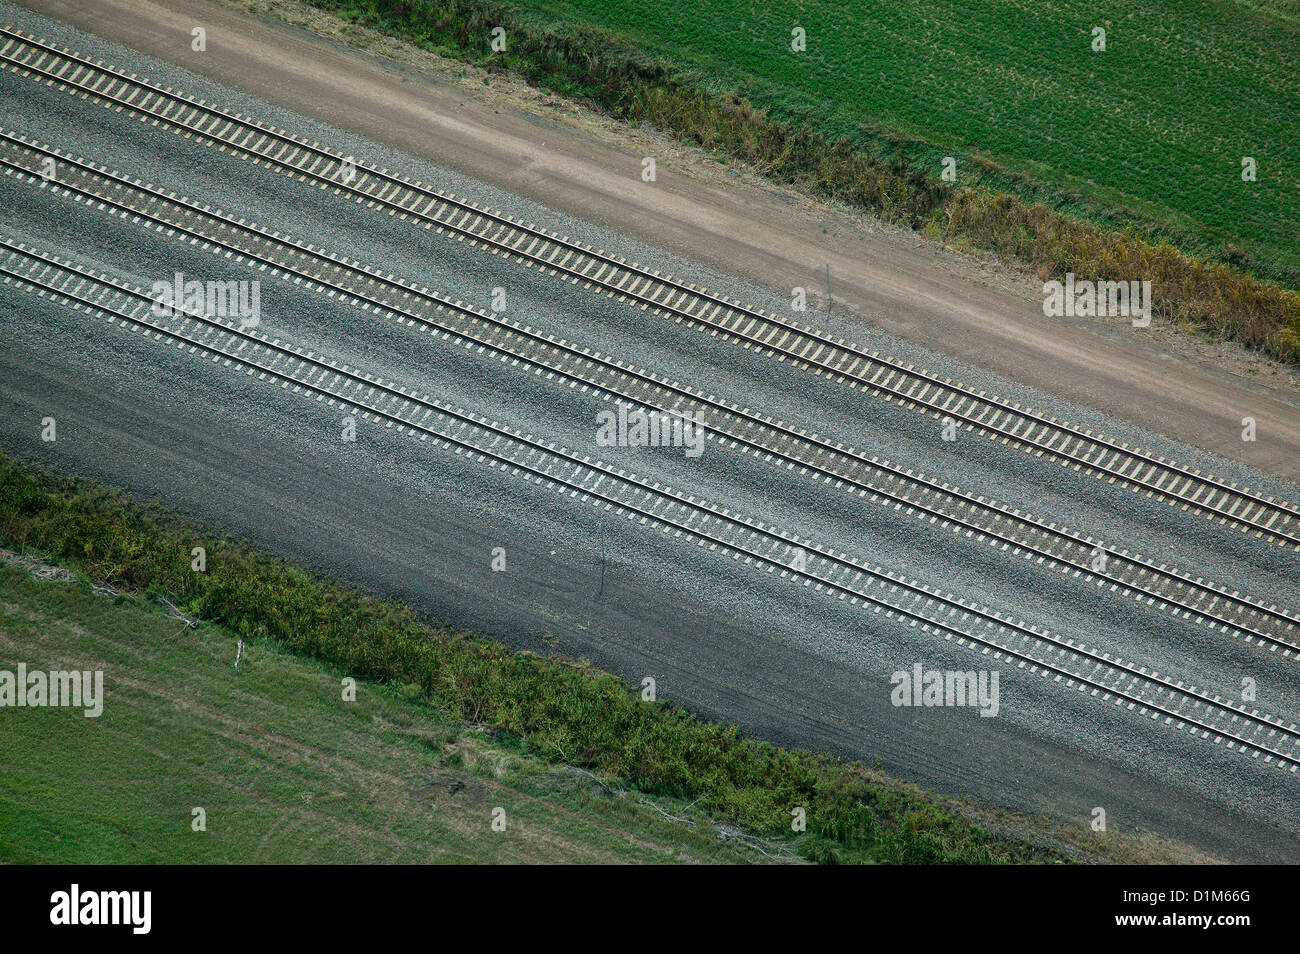 aerial photograph Union Pacific railway tracks, Nebraska - Stock Image